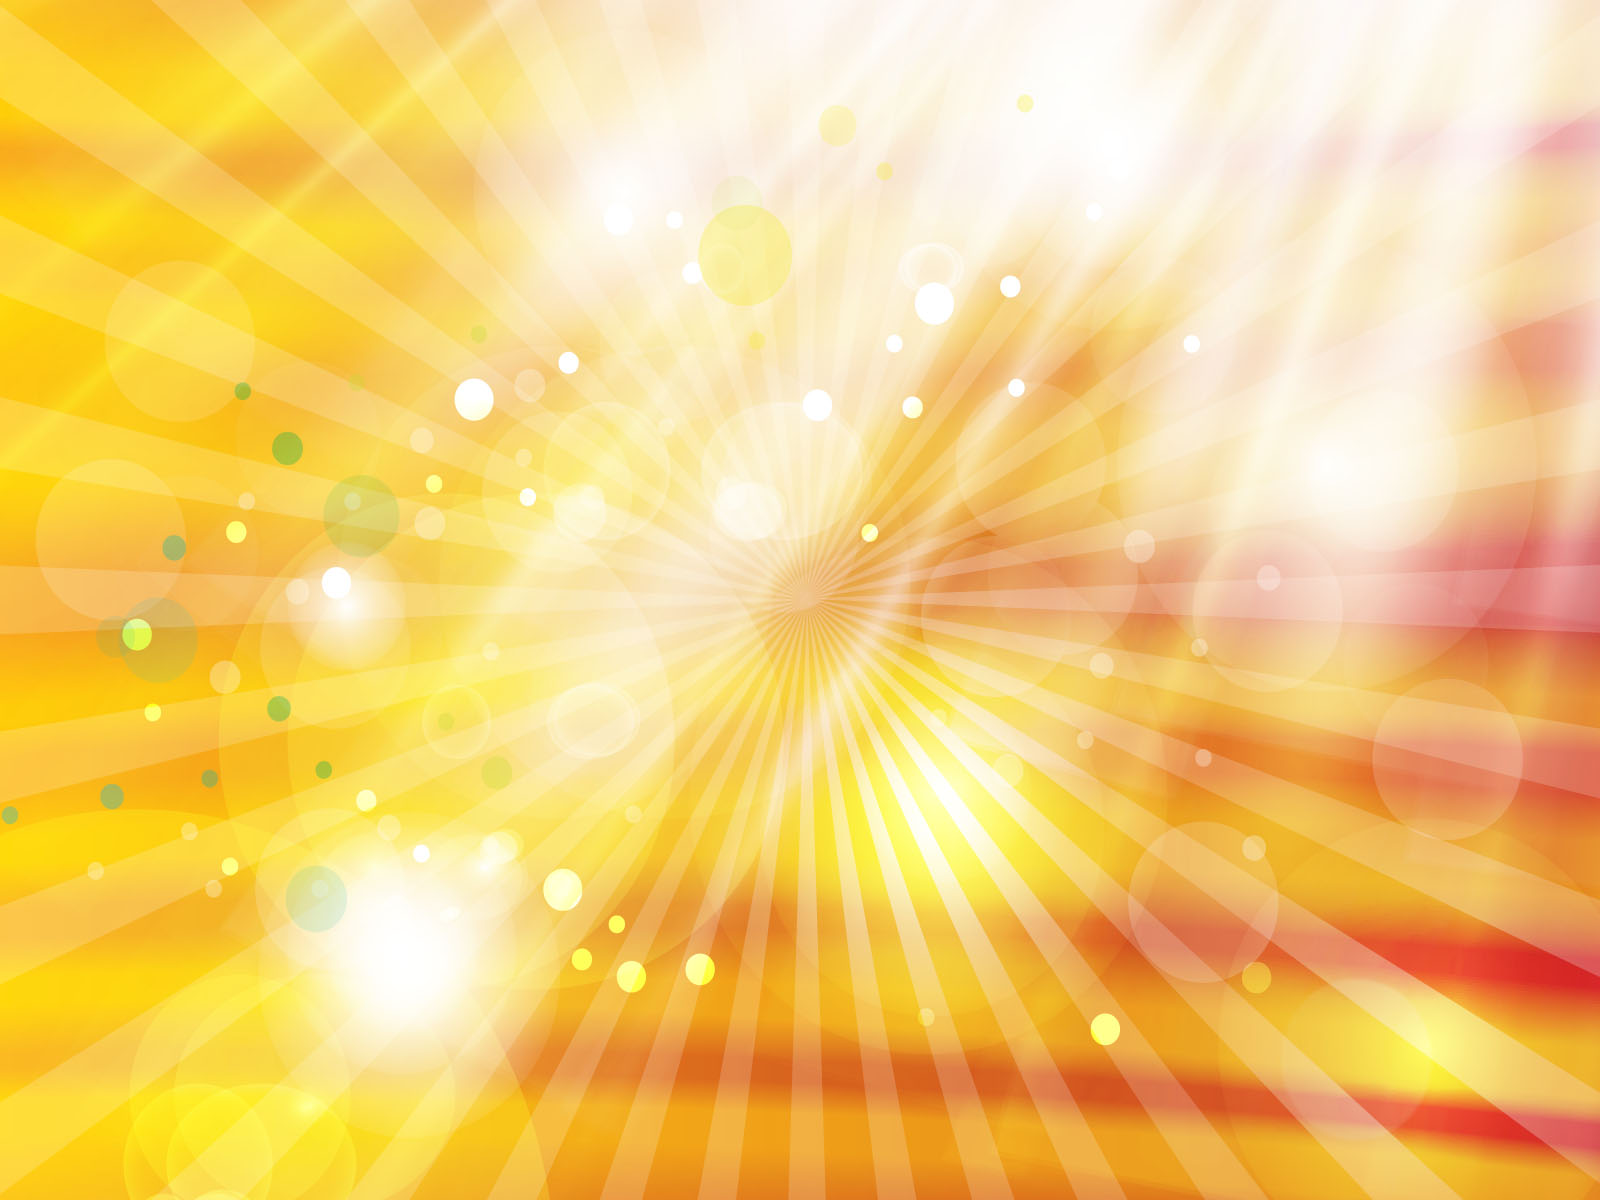 Abstract Golden White Light Powerpoint Template